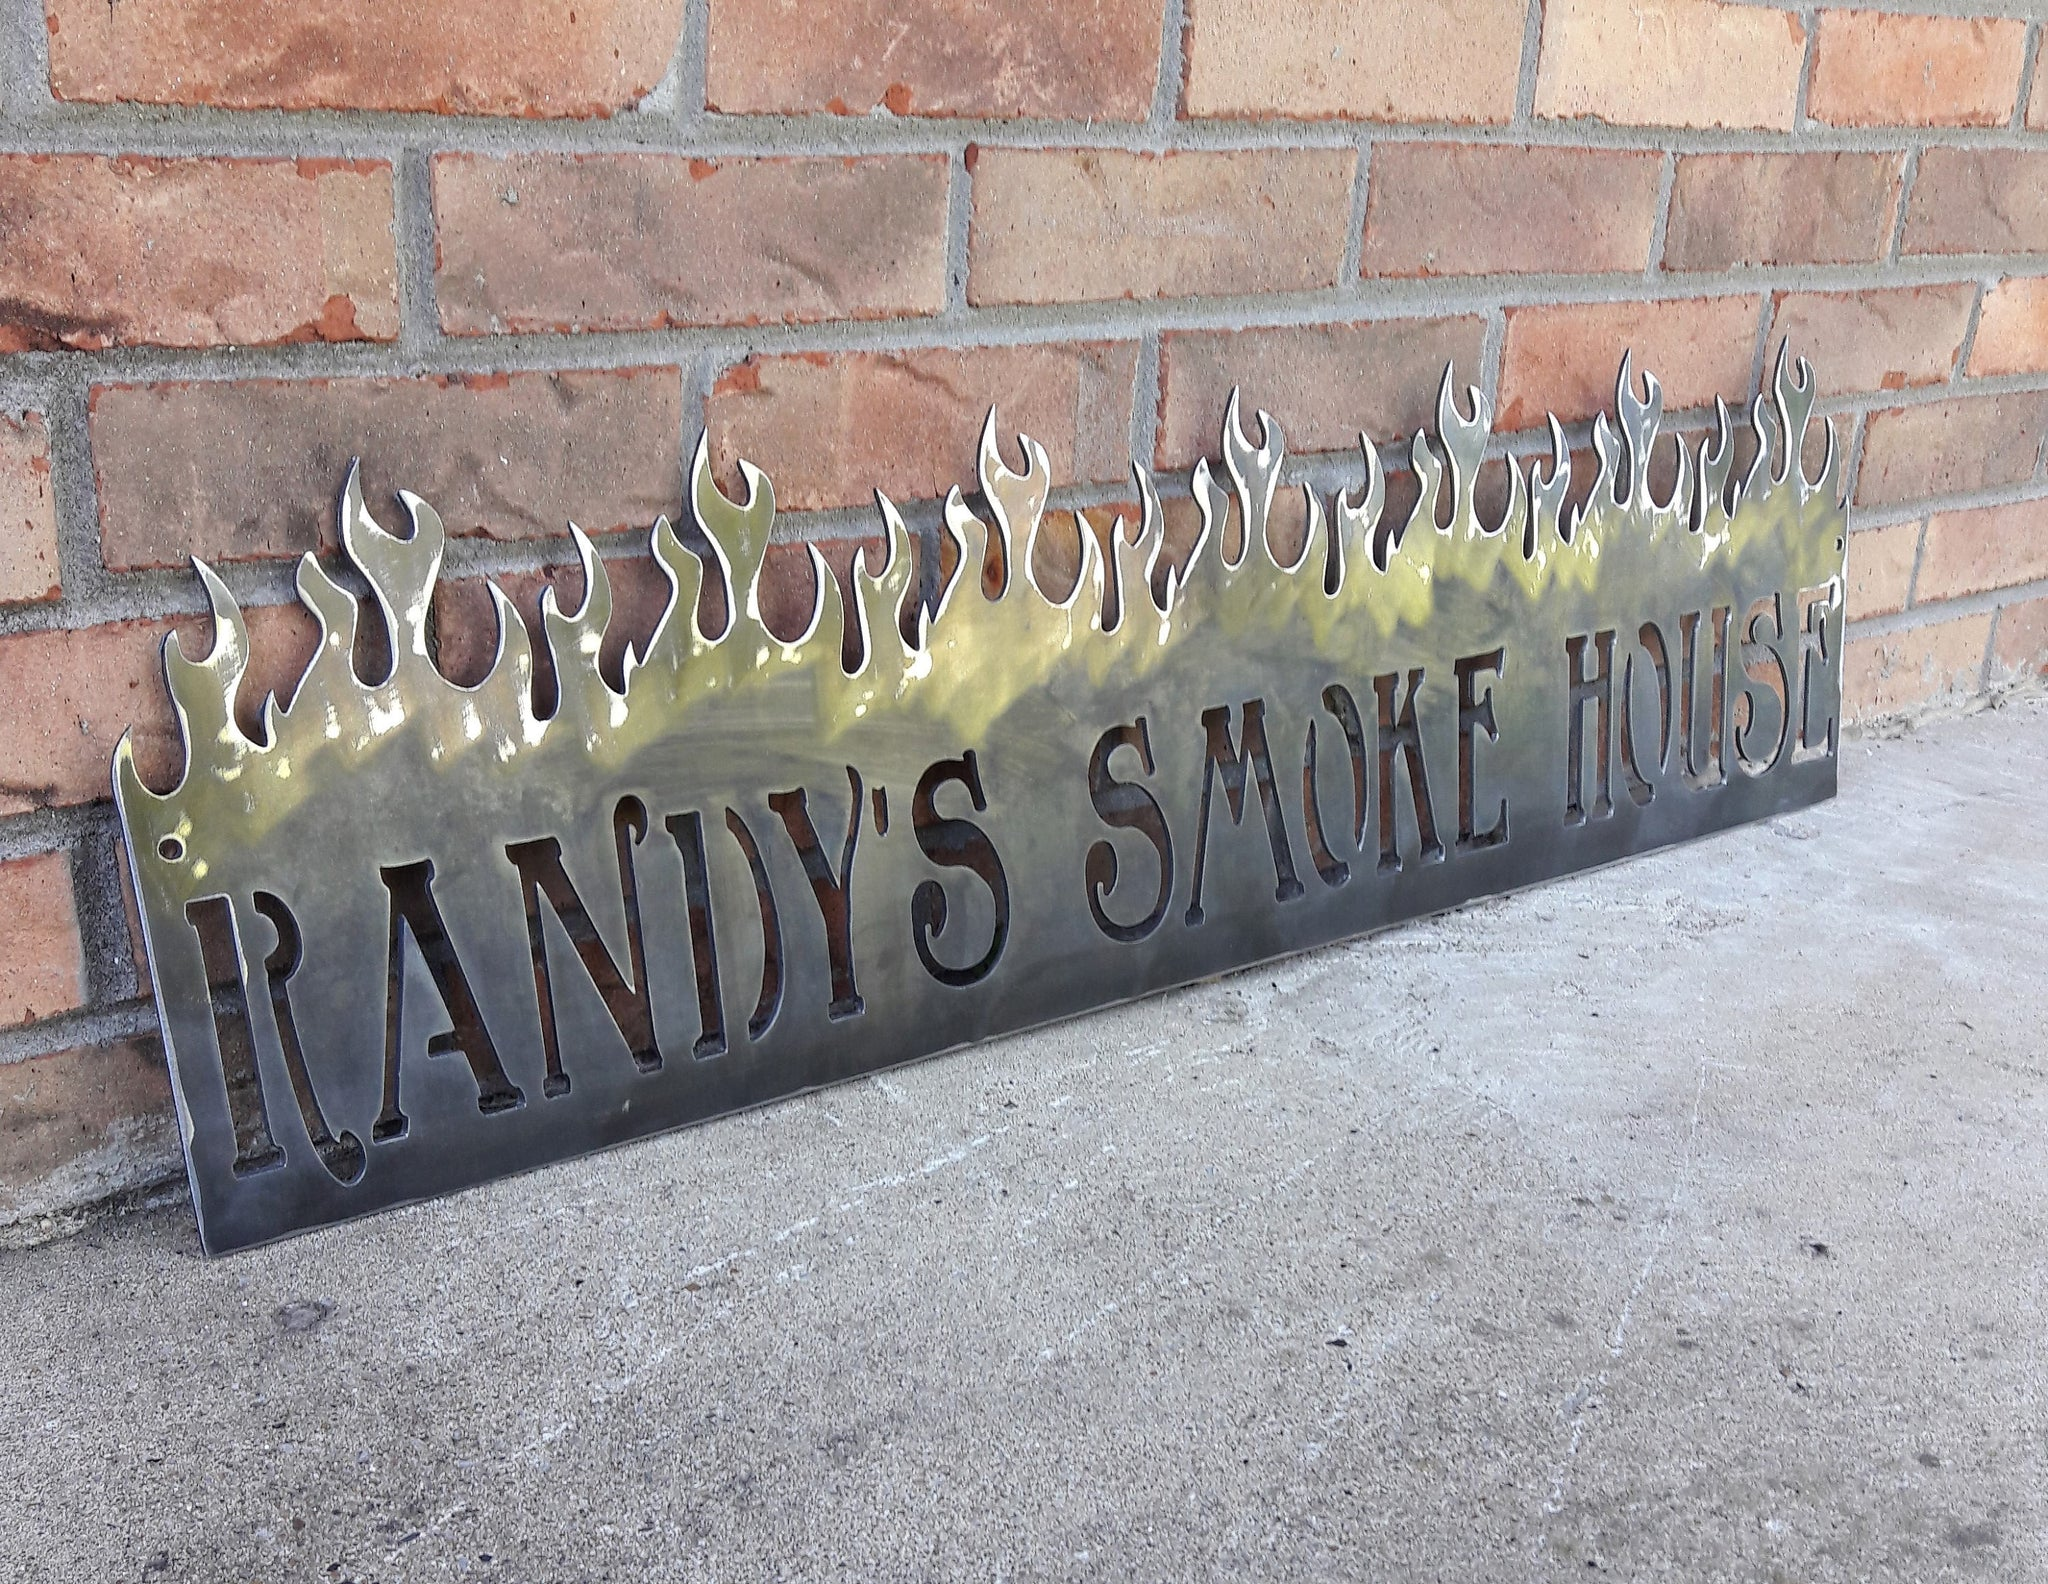 "This is a personalized metal sign that features flames at the top and reads, "" Randy's Smoke House""."